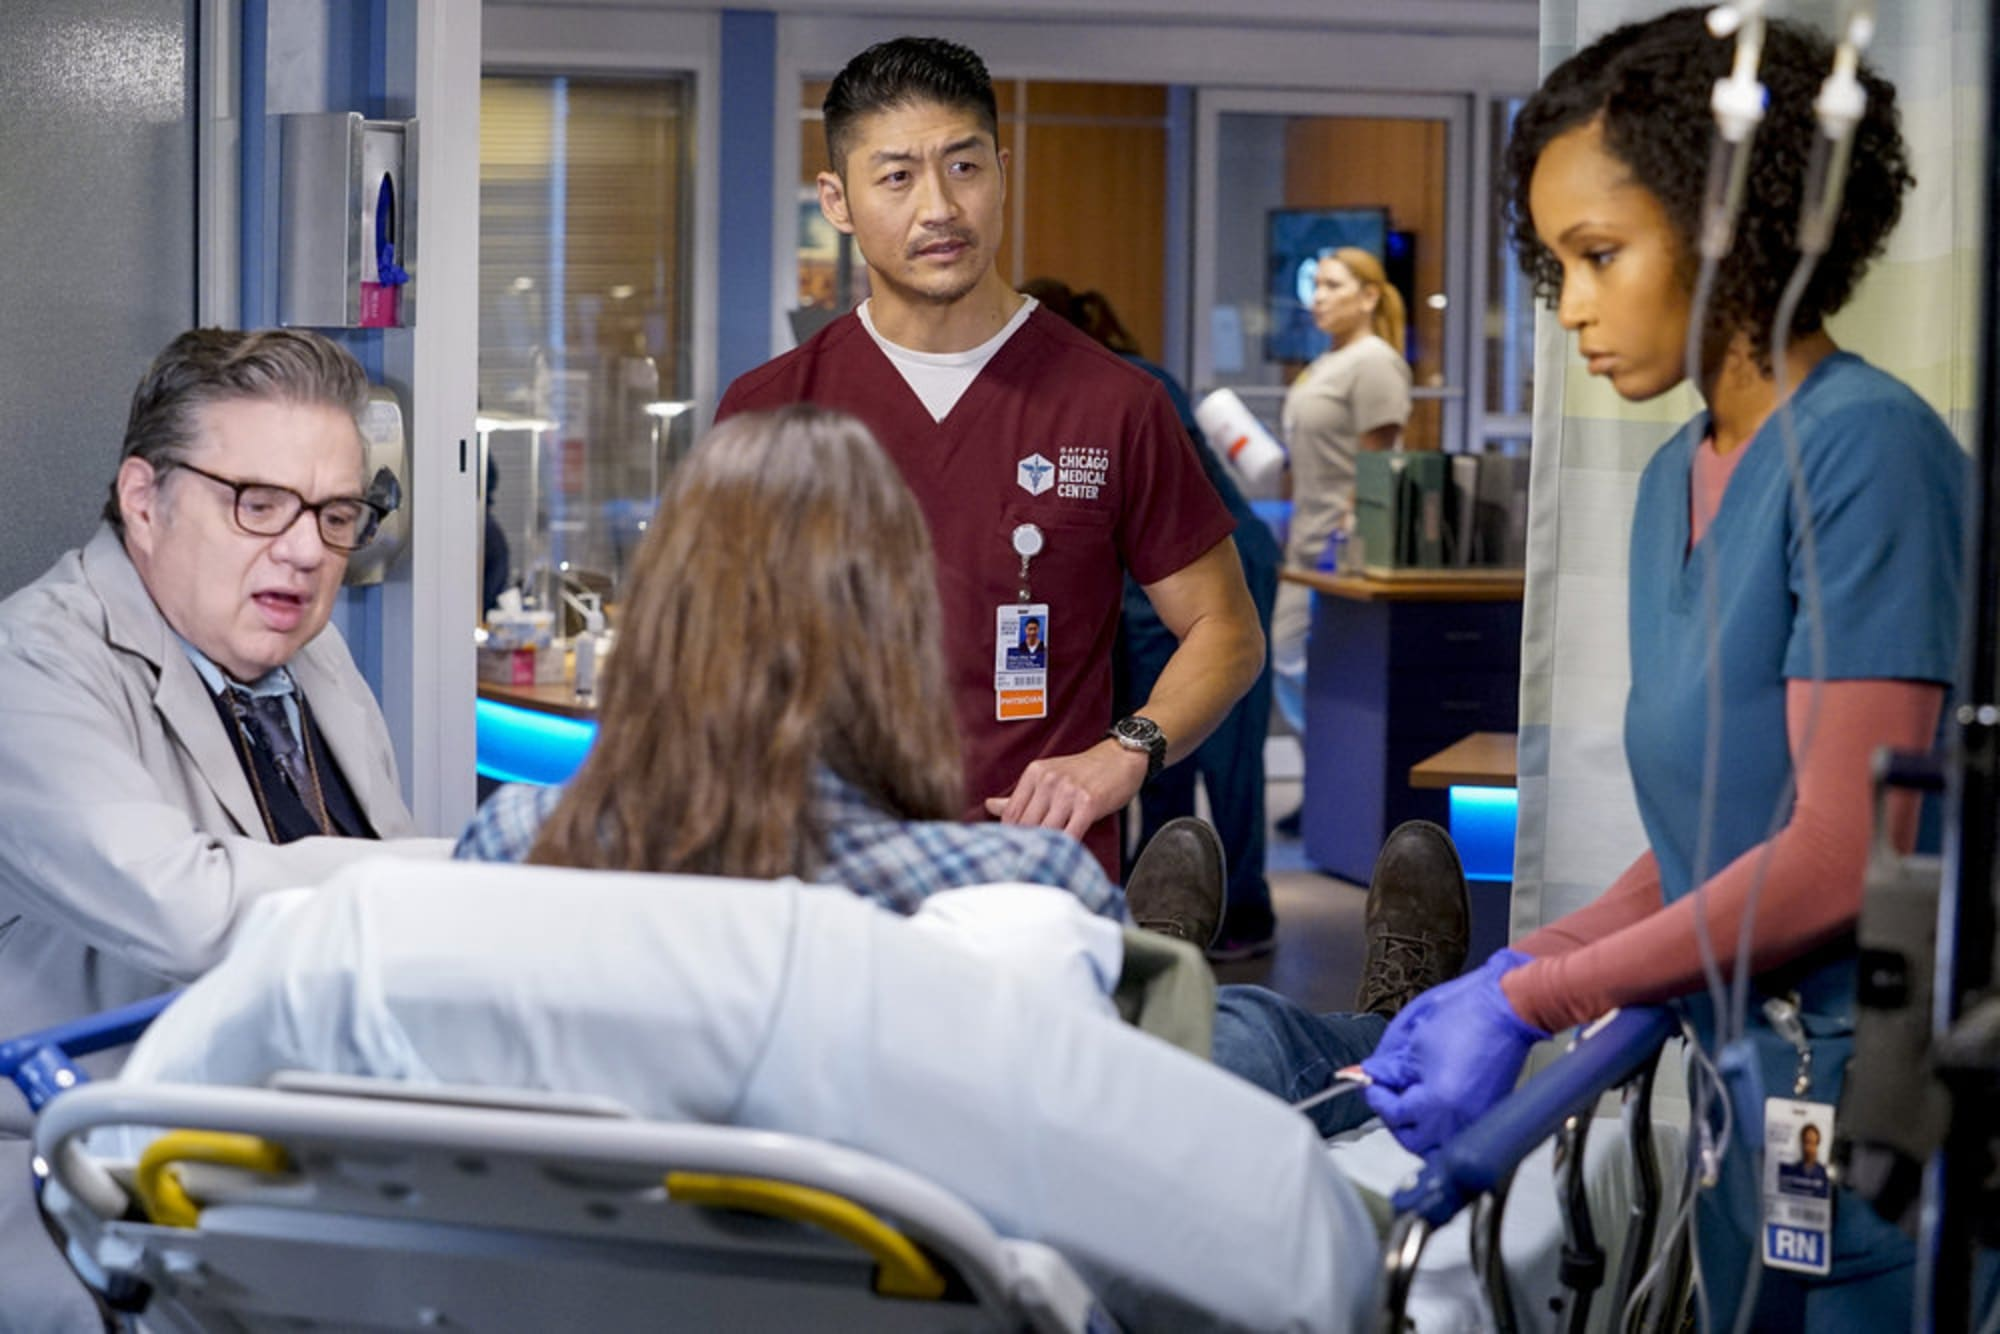 Chicago Med Season 6 Episode 16 Release Date and Spoilers